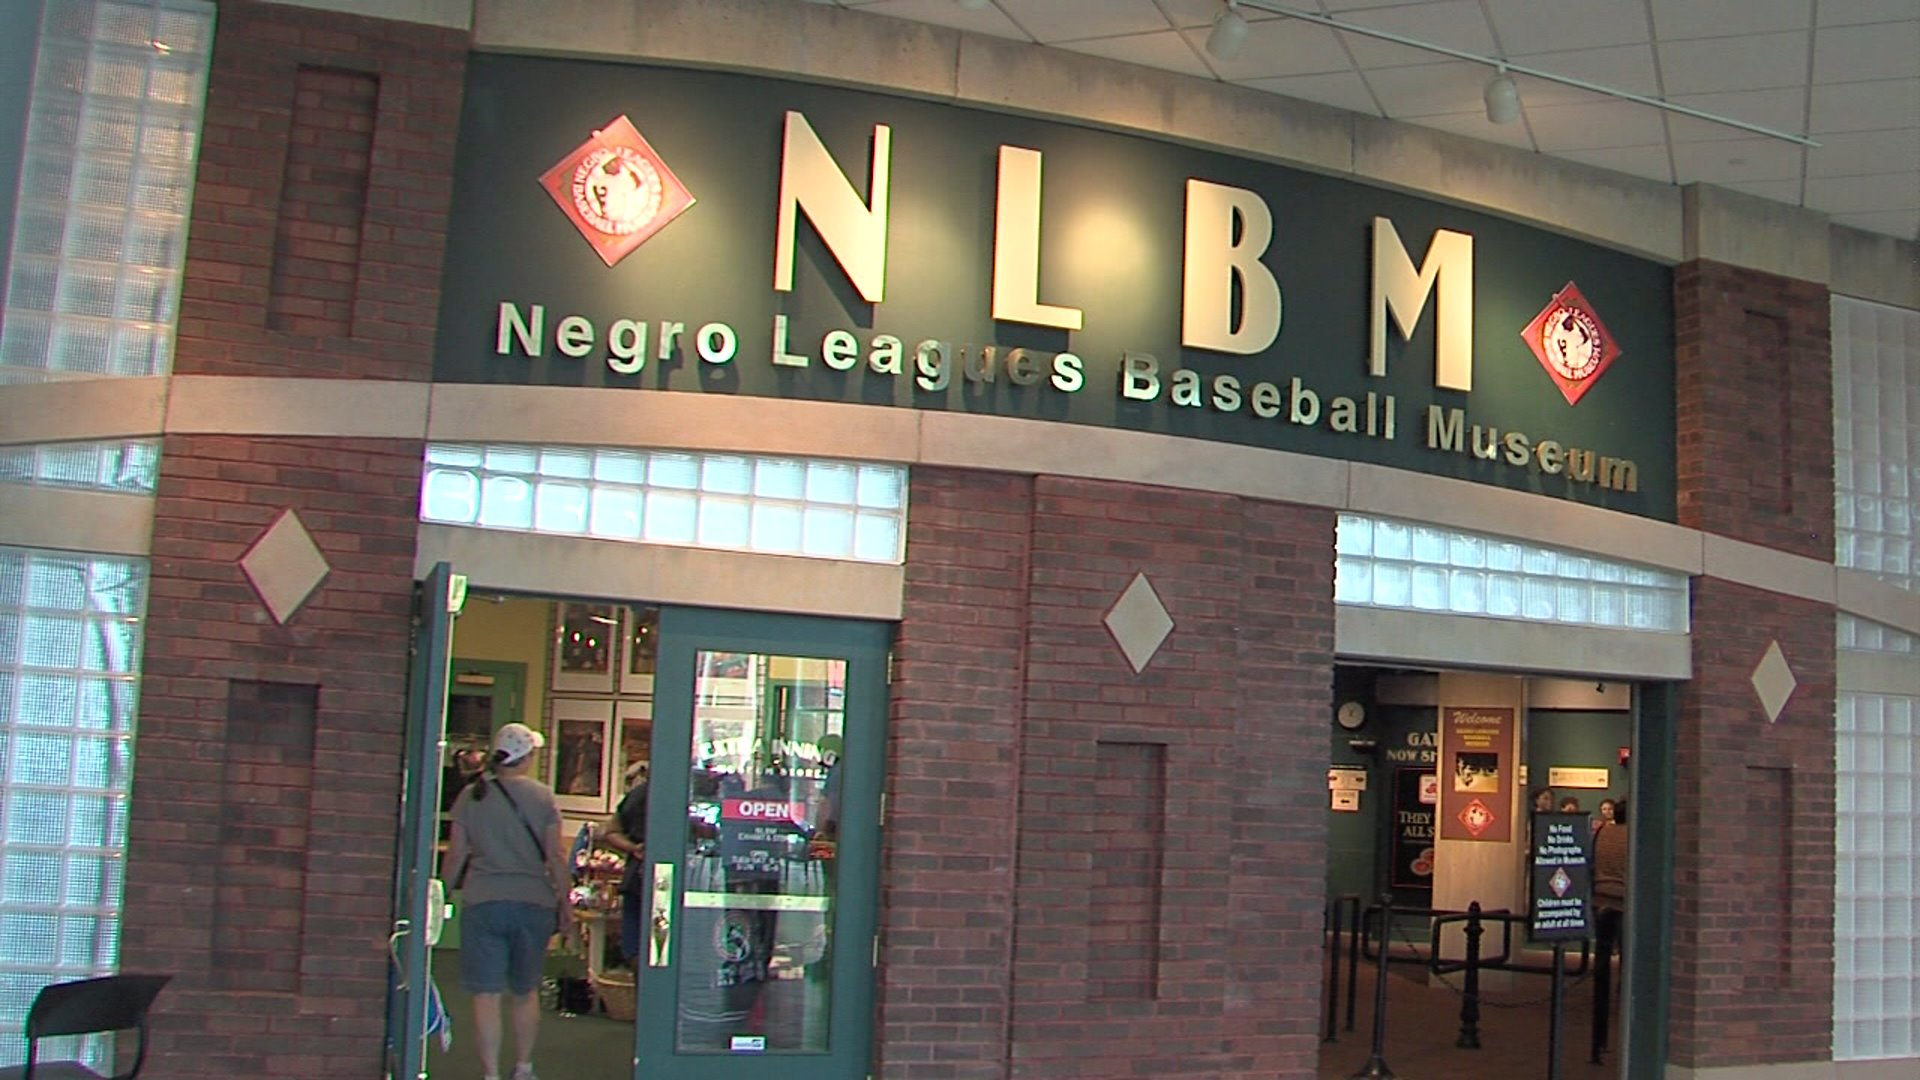 NLBM sign picture